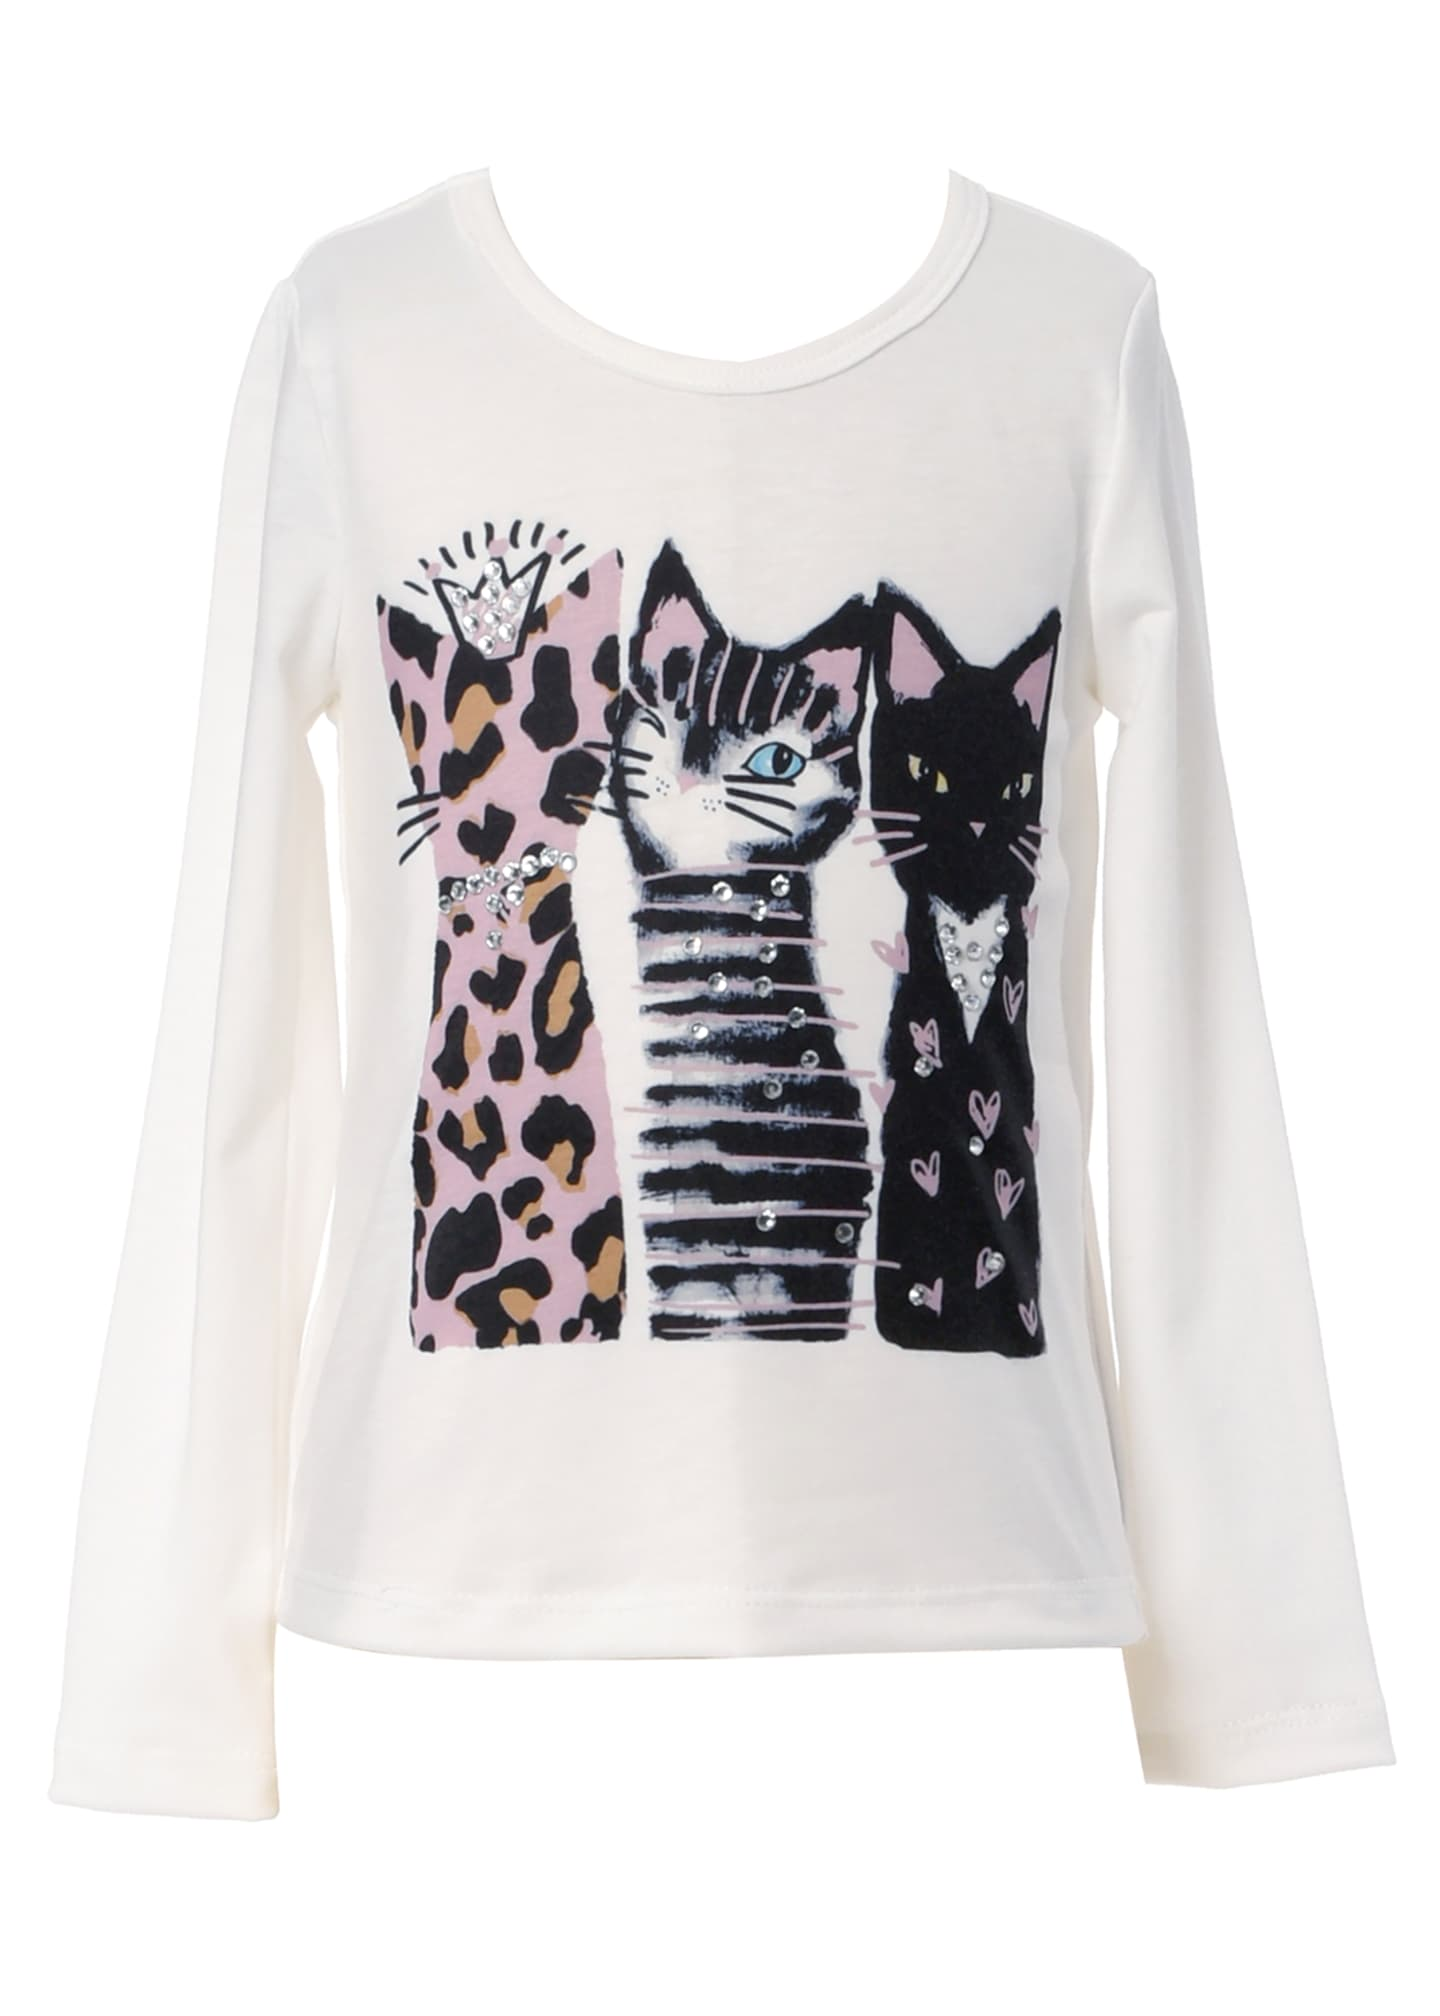 Image 1 of 3: Girl's 3 Cats Long-Sleeve Graphic T-Shirt, Size 7-14